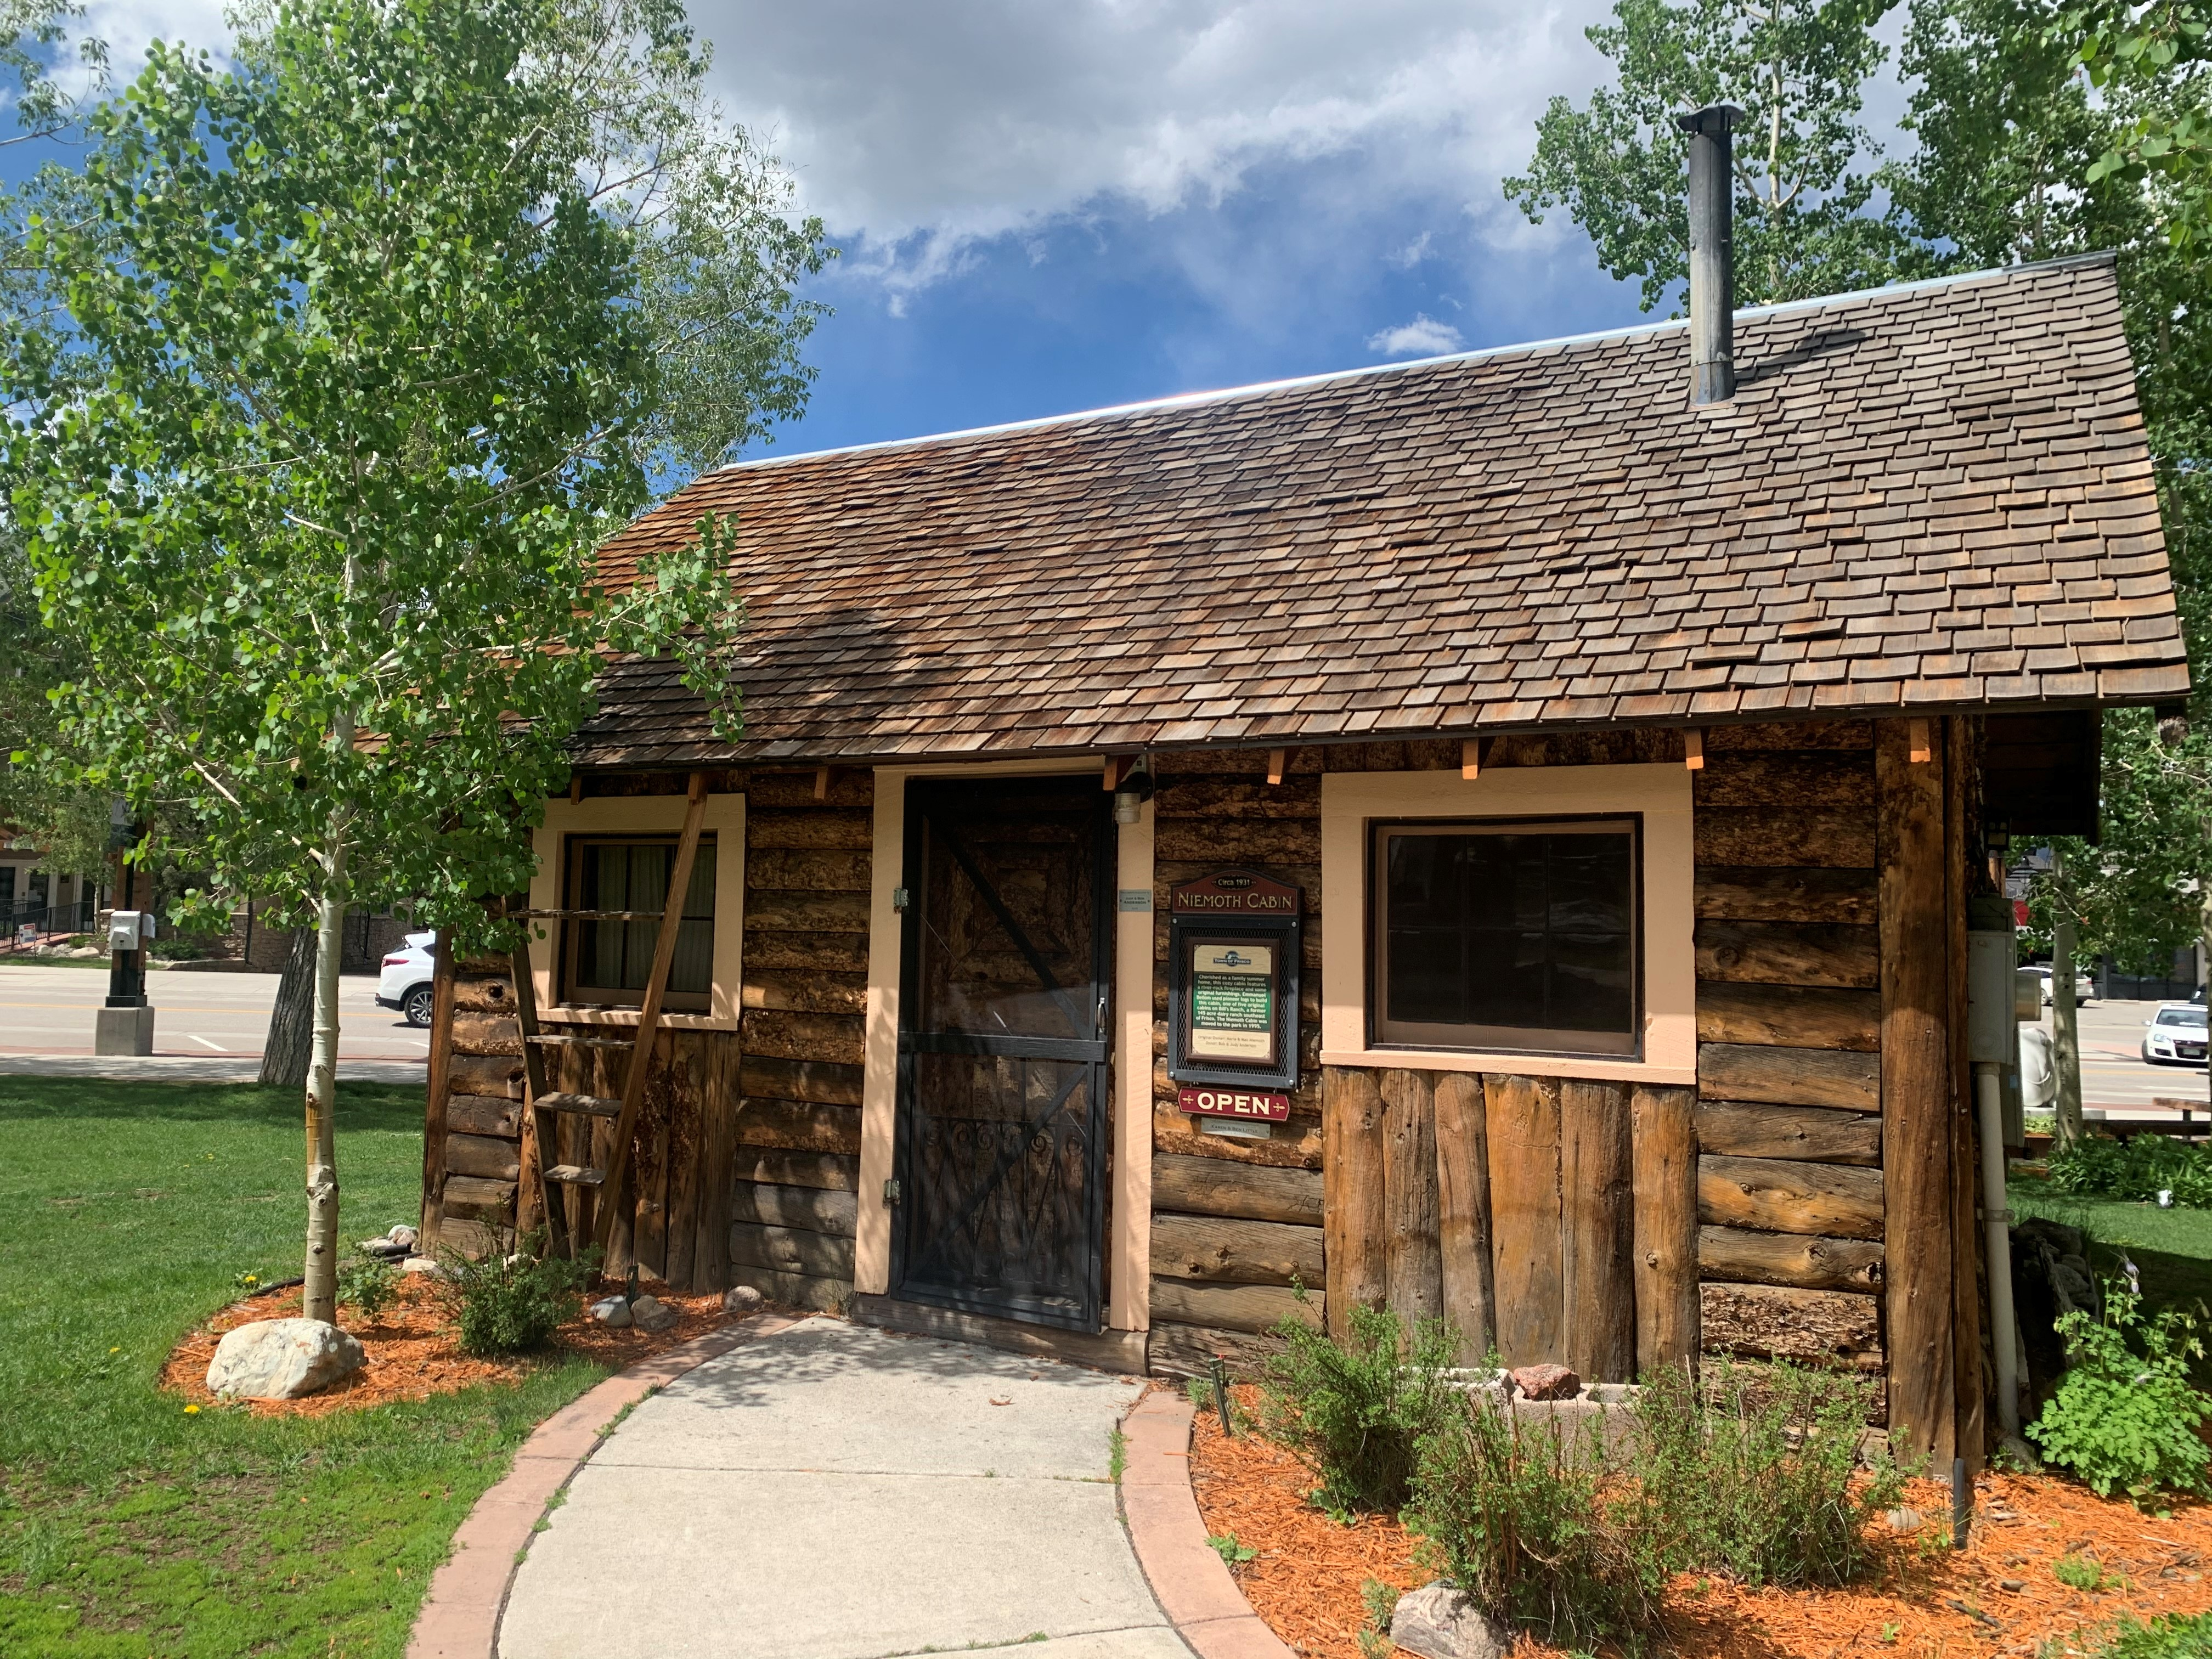 Exterior of the Niemoth Cabin, situated in the Frisco Historic Park. Circa June, 2020.